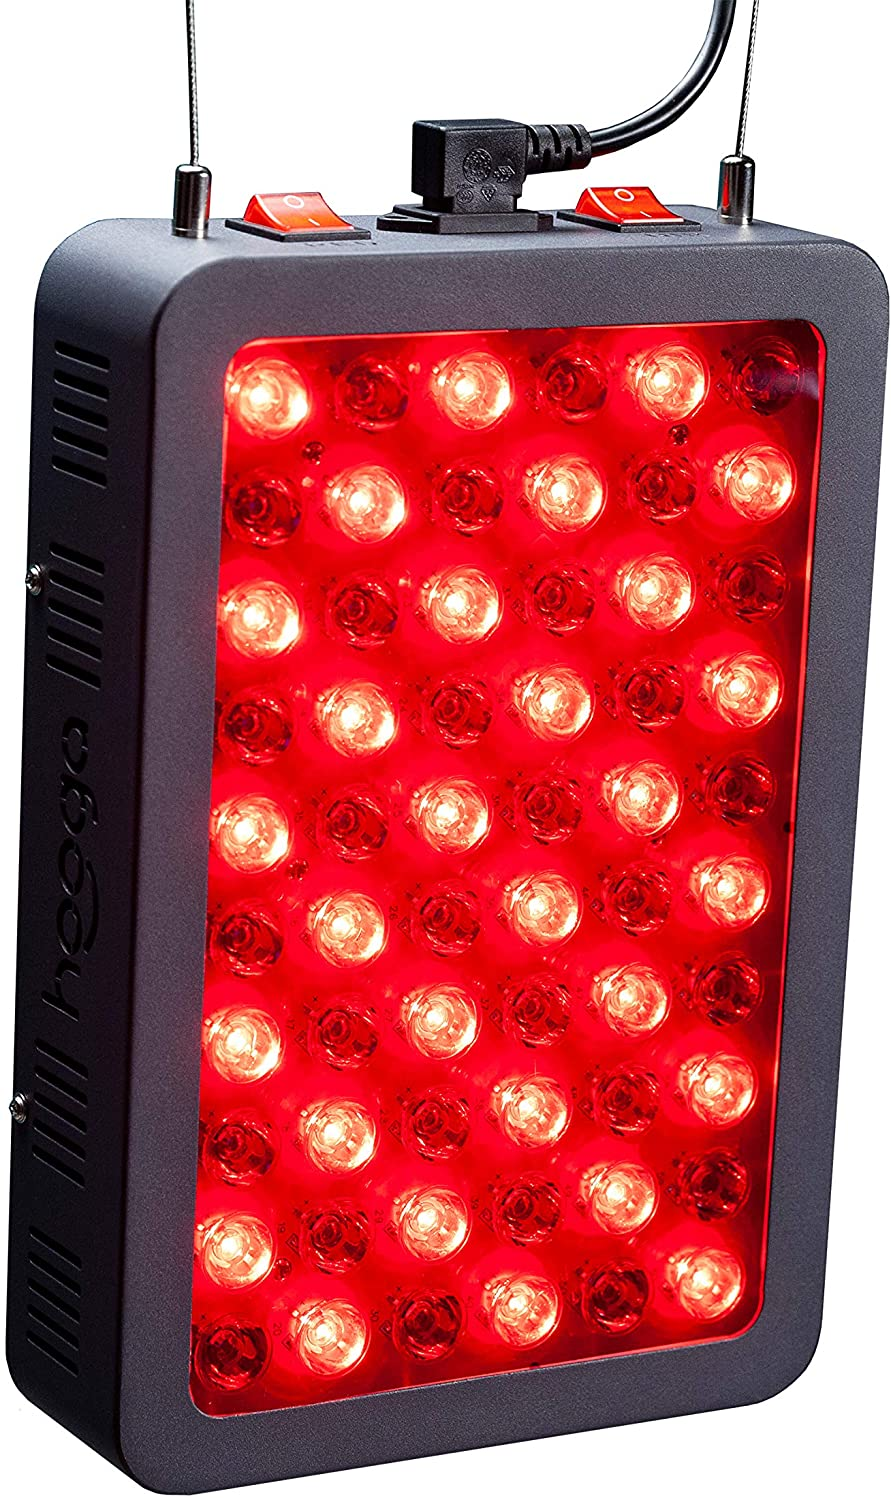 Red Light Therapy Device by Hooga